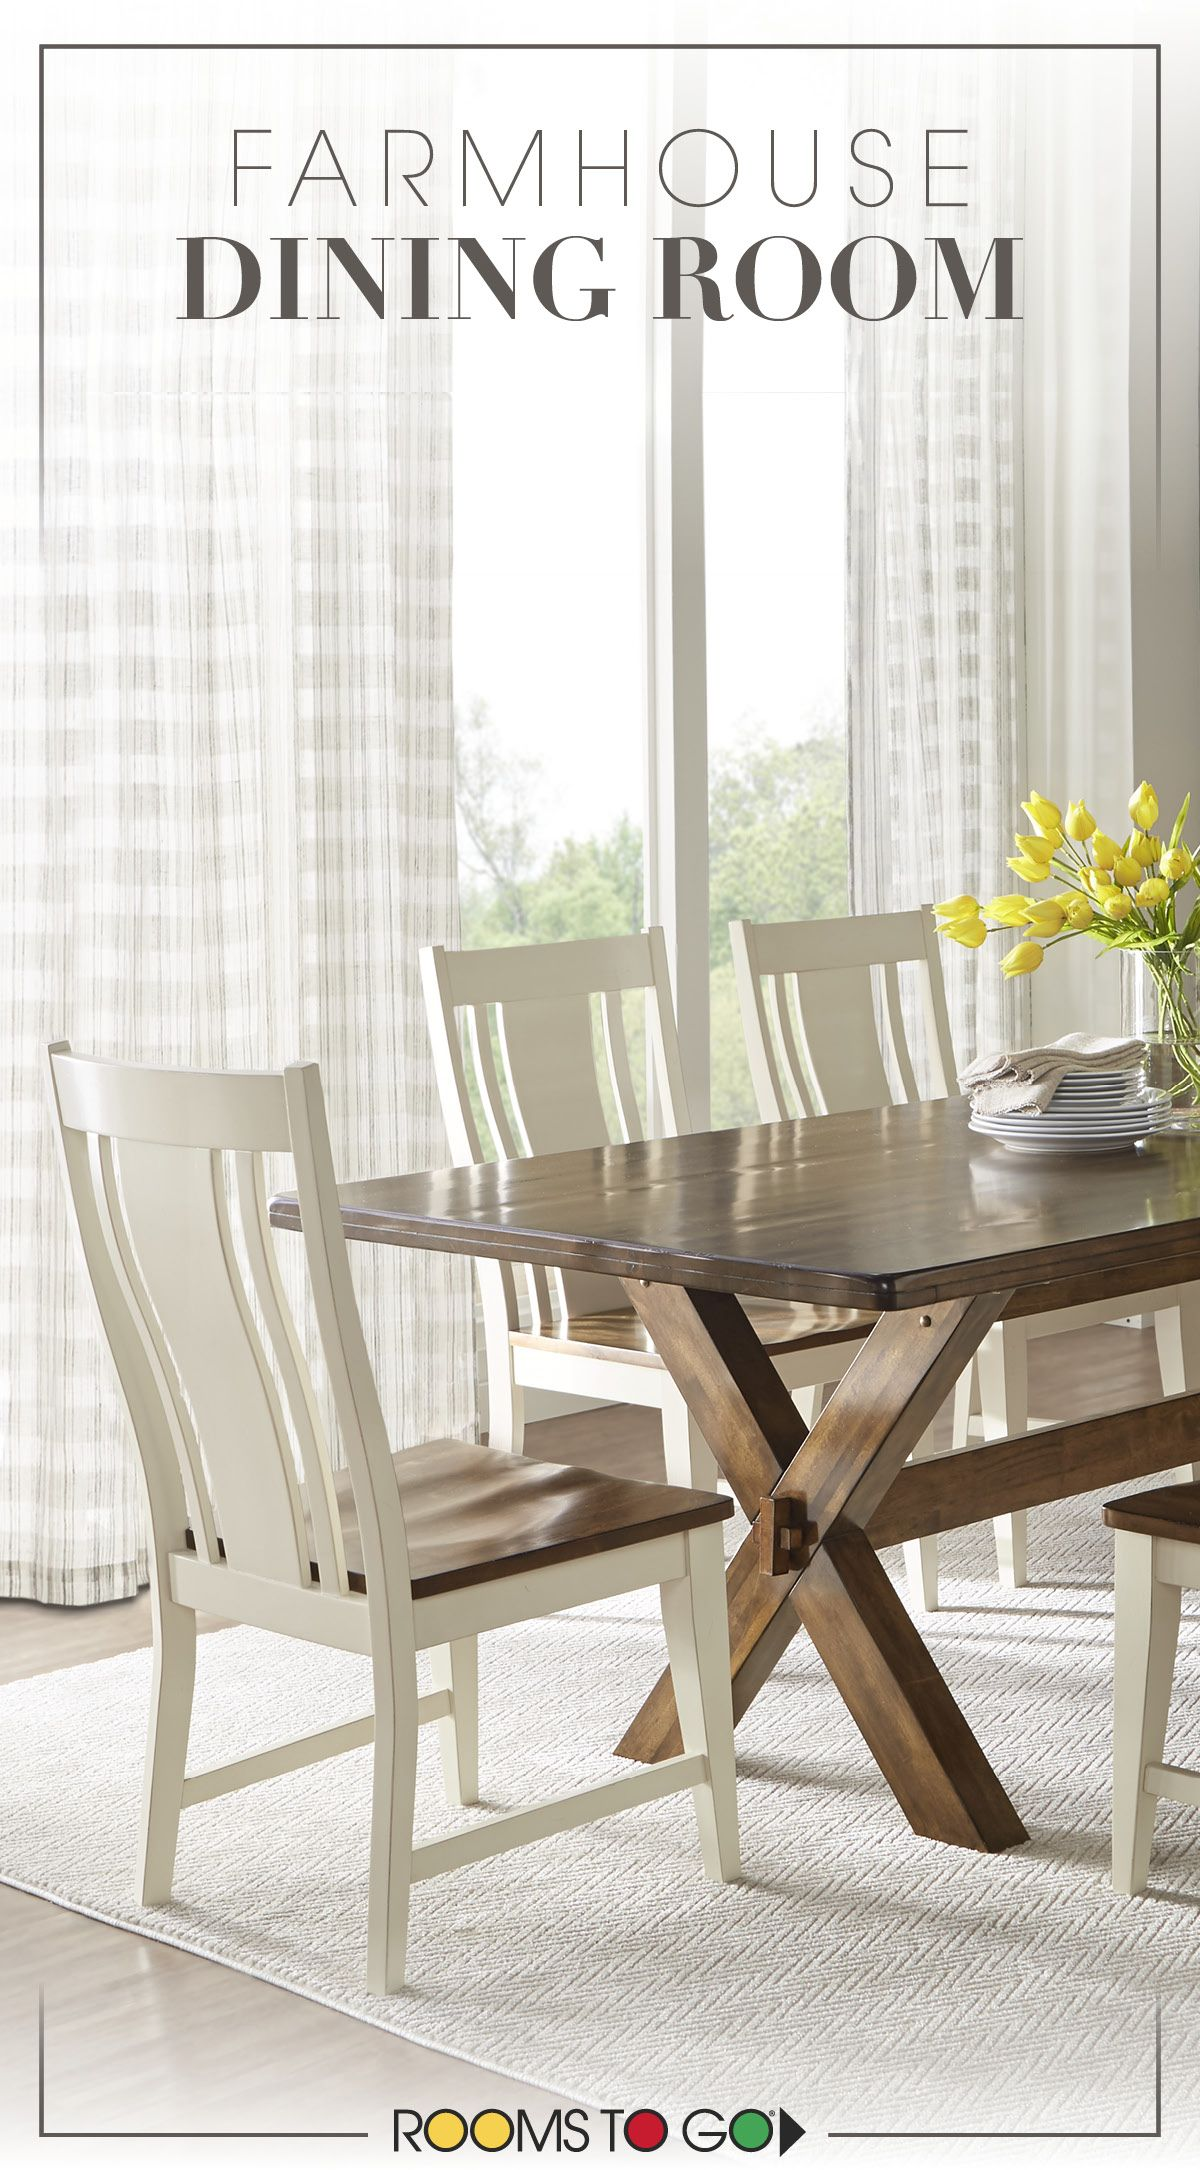 A Farmhouse Style Sets The Tone For The Twin Lakes Dining Room Whether You Re Sitting Down F Casual Dining Rooms Farmhouse Dining Room Dining Room Table Decor